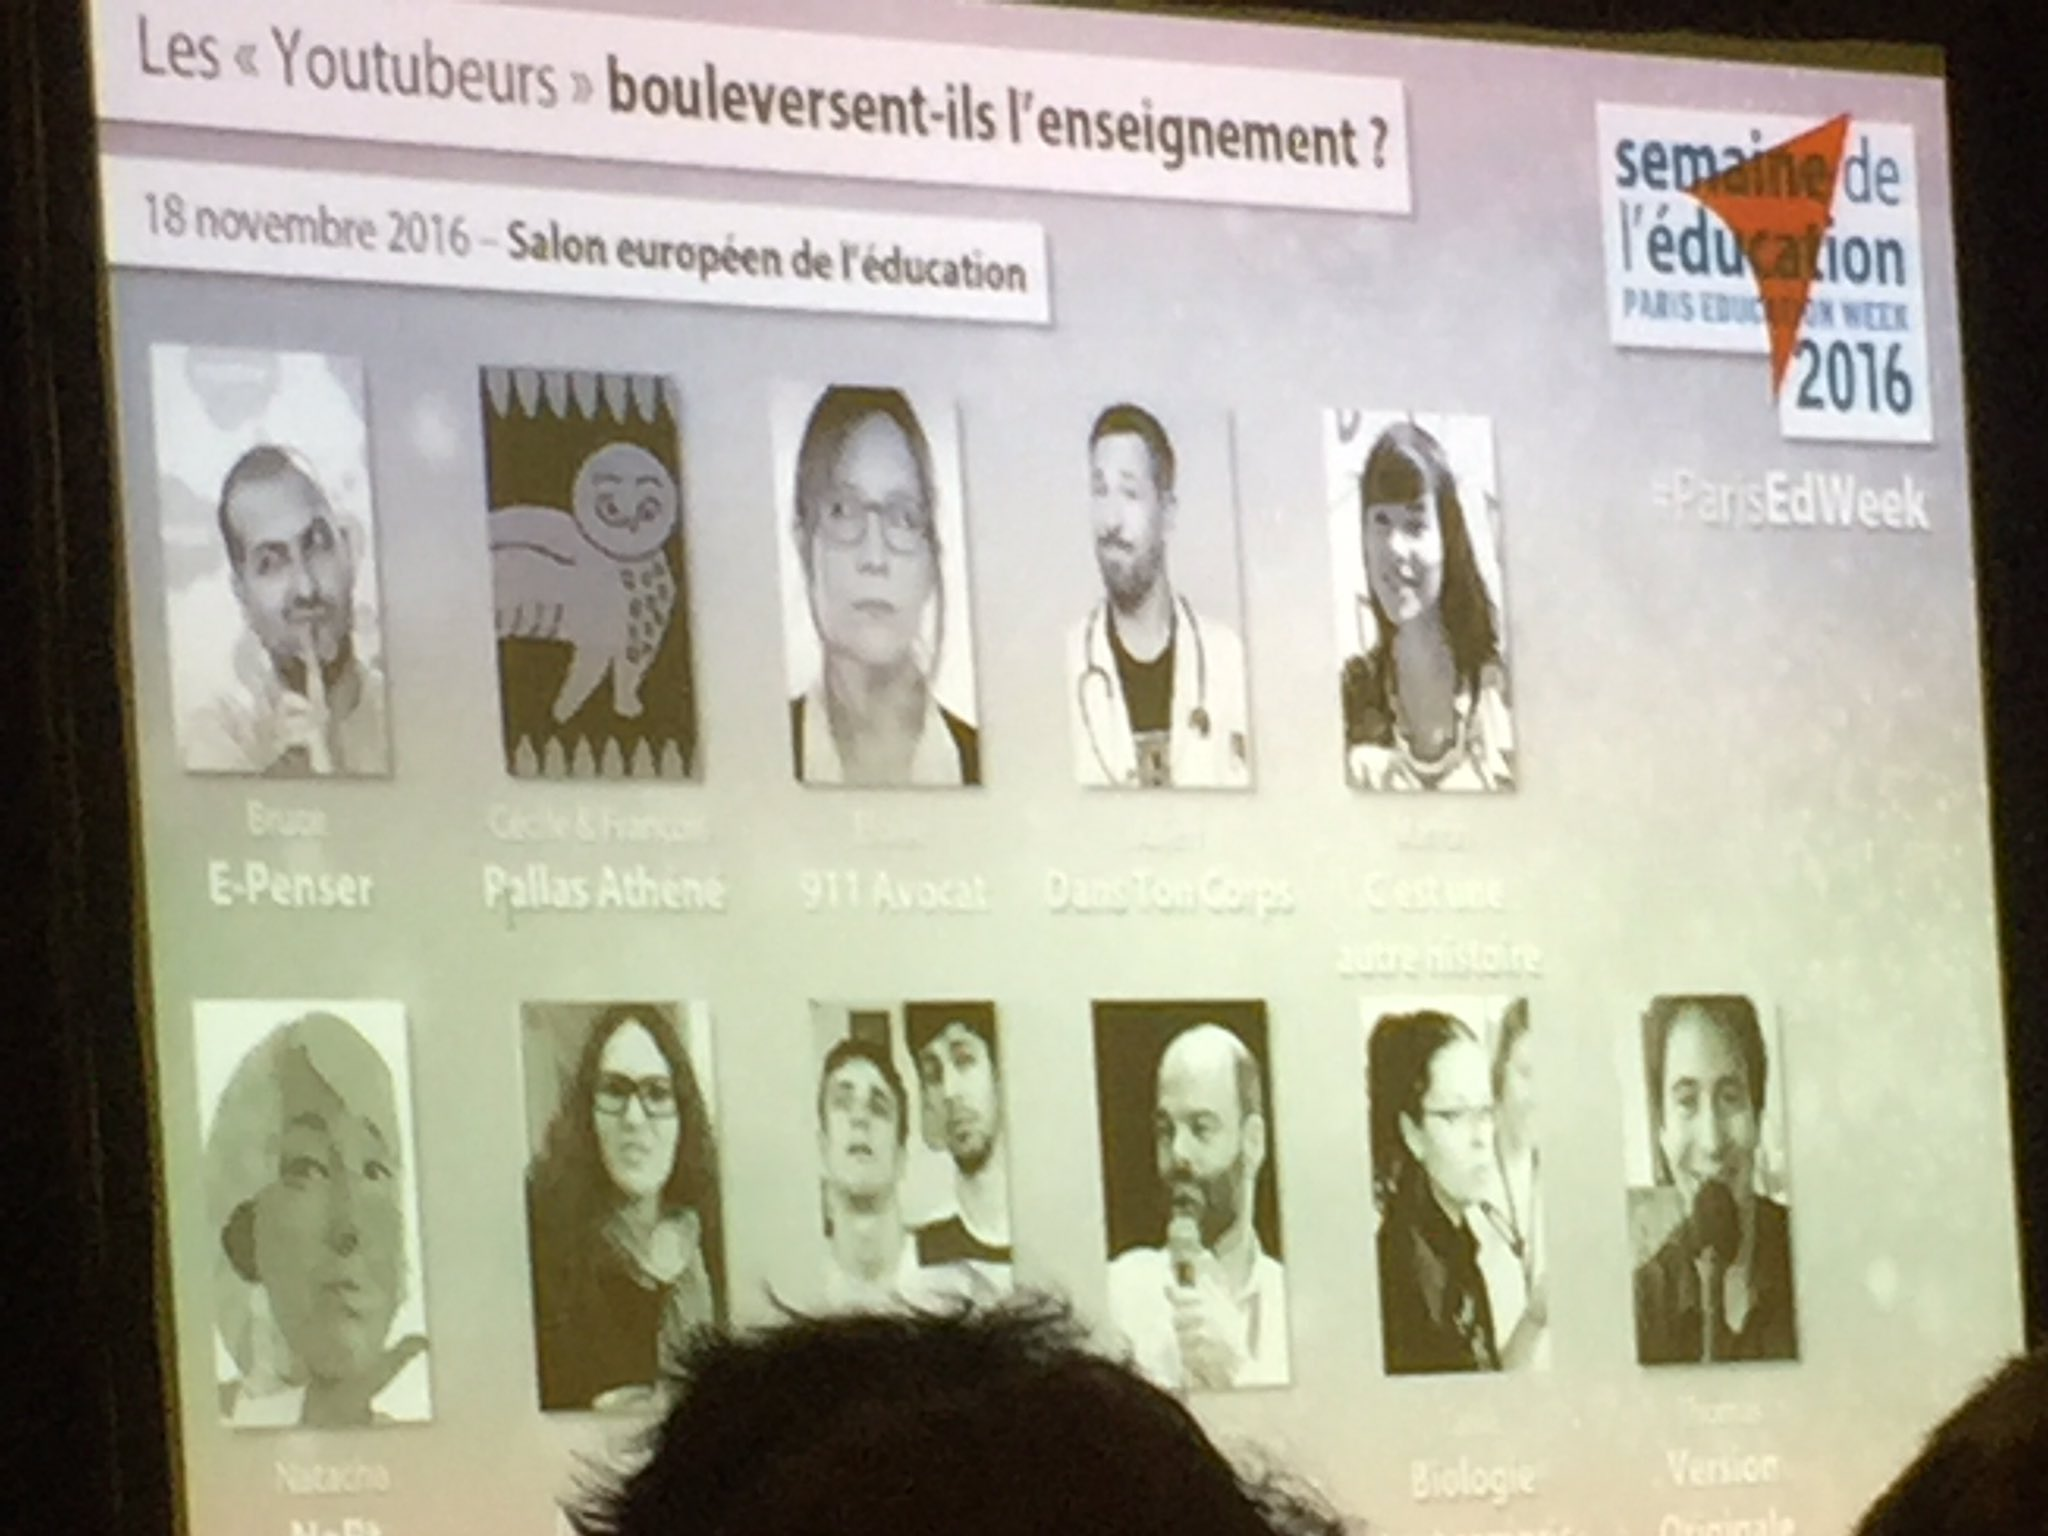 Les youtubeurs en Education #educatectice https://t.co/DYY25E59w9